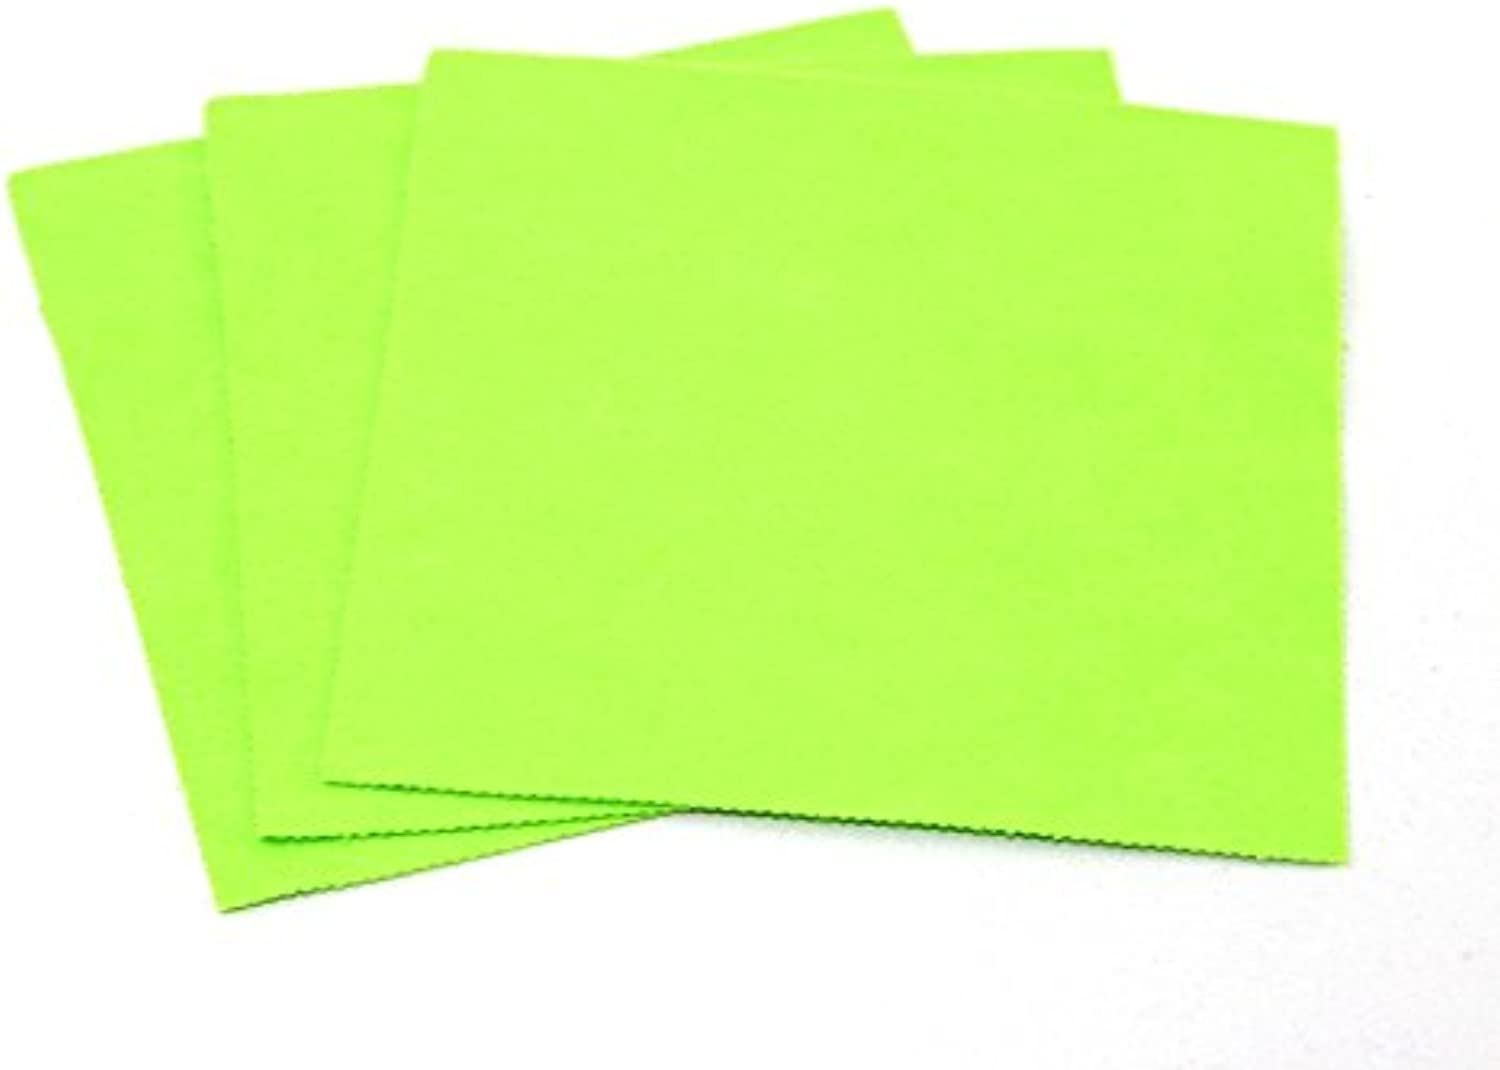 Minerva Crafts Sticky Back Self Adhesive Acrylic Felt Fabric 18  Square Zest Green - per pack of 100